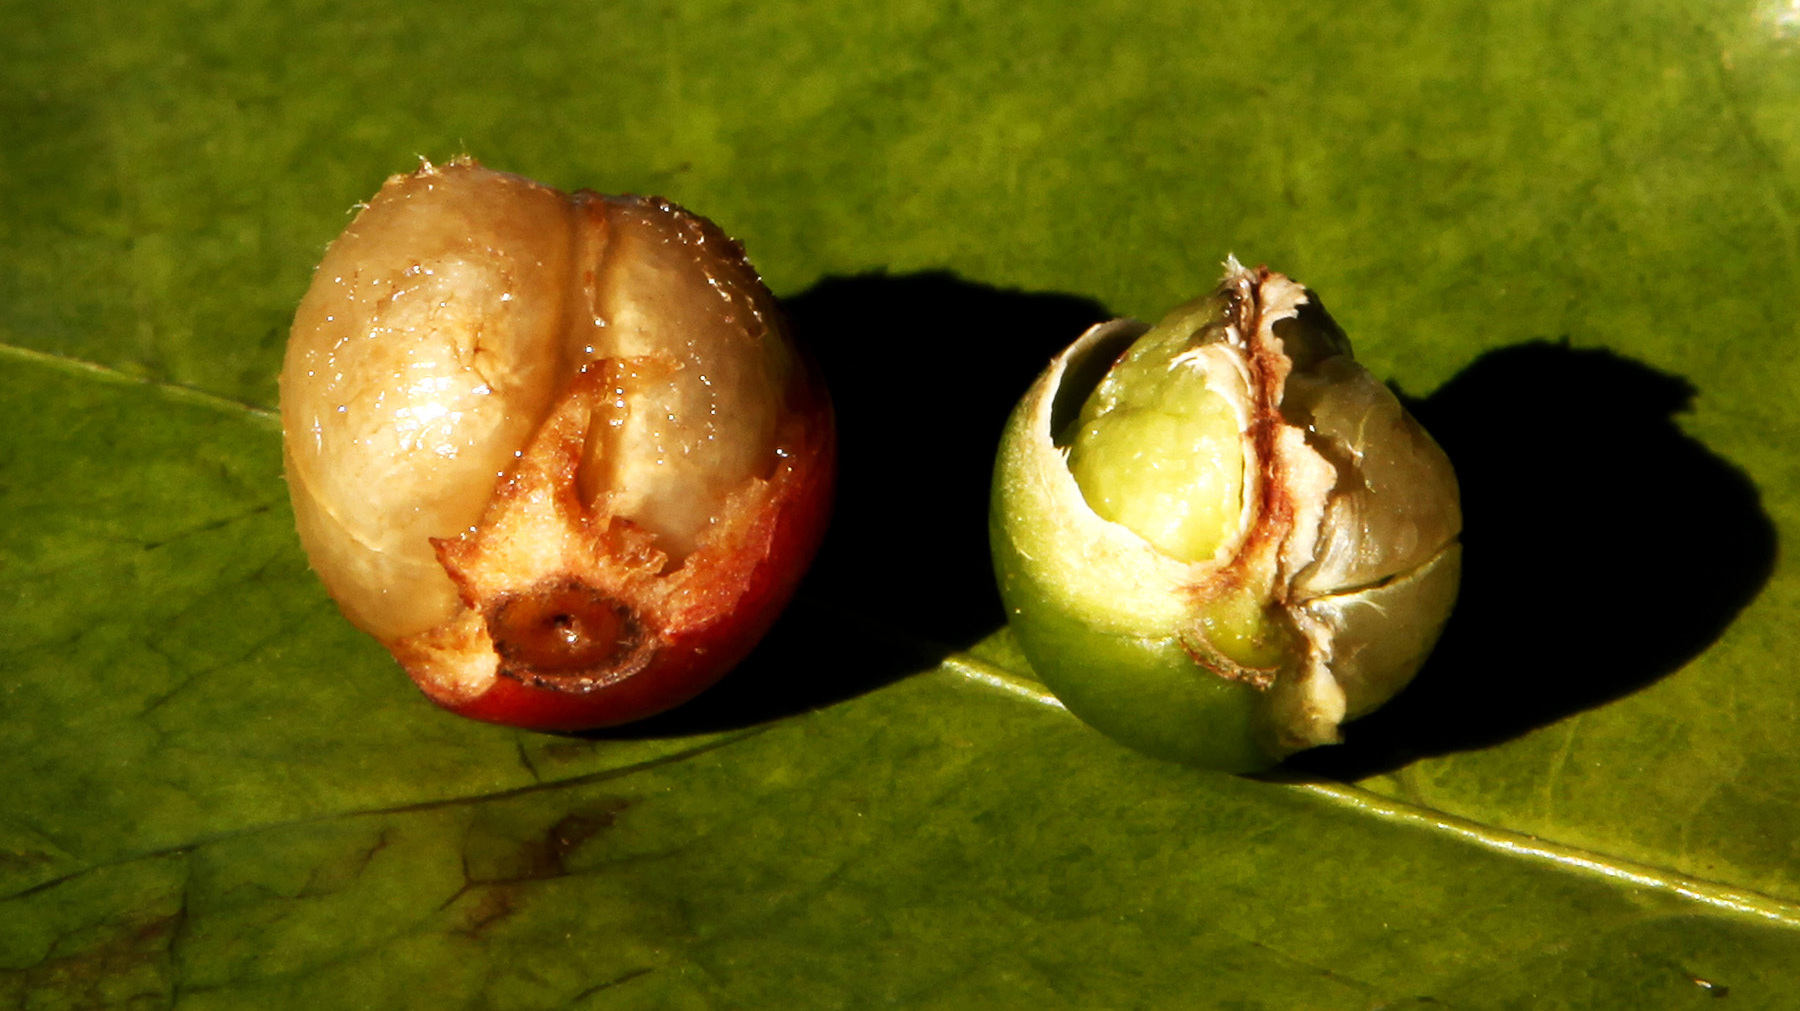 A fully formed coffee berry, left, is shown next to a damaged coffee berry due to drought, at a coffee farm in Santo Antonio do Jardim, Brazil on Feb. 6. Photo: Paulo Whitaker/Reuters/Landov